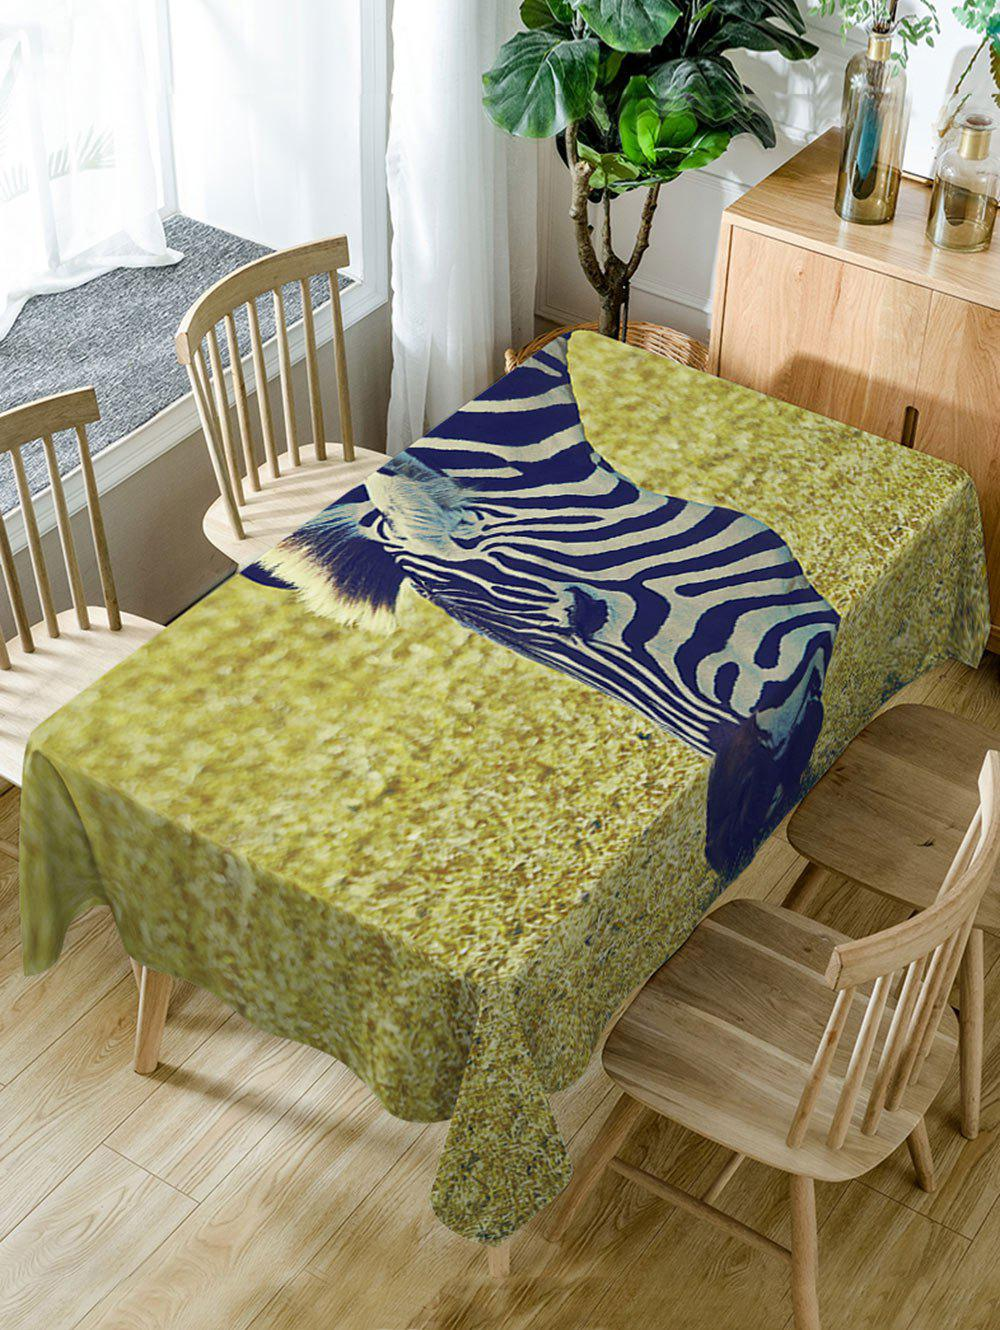 Zebra Grassland Print Waterproof Dining Table Cloth - COLORMIX W54 INCH * L72 INCH